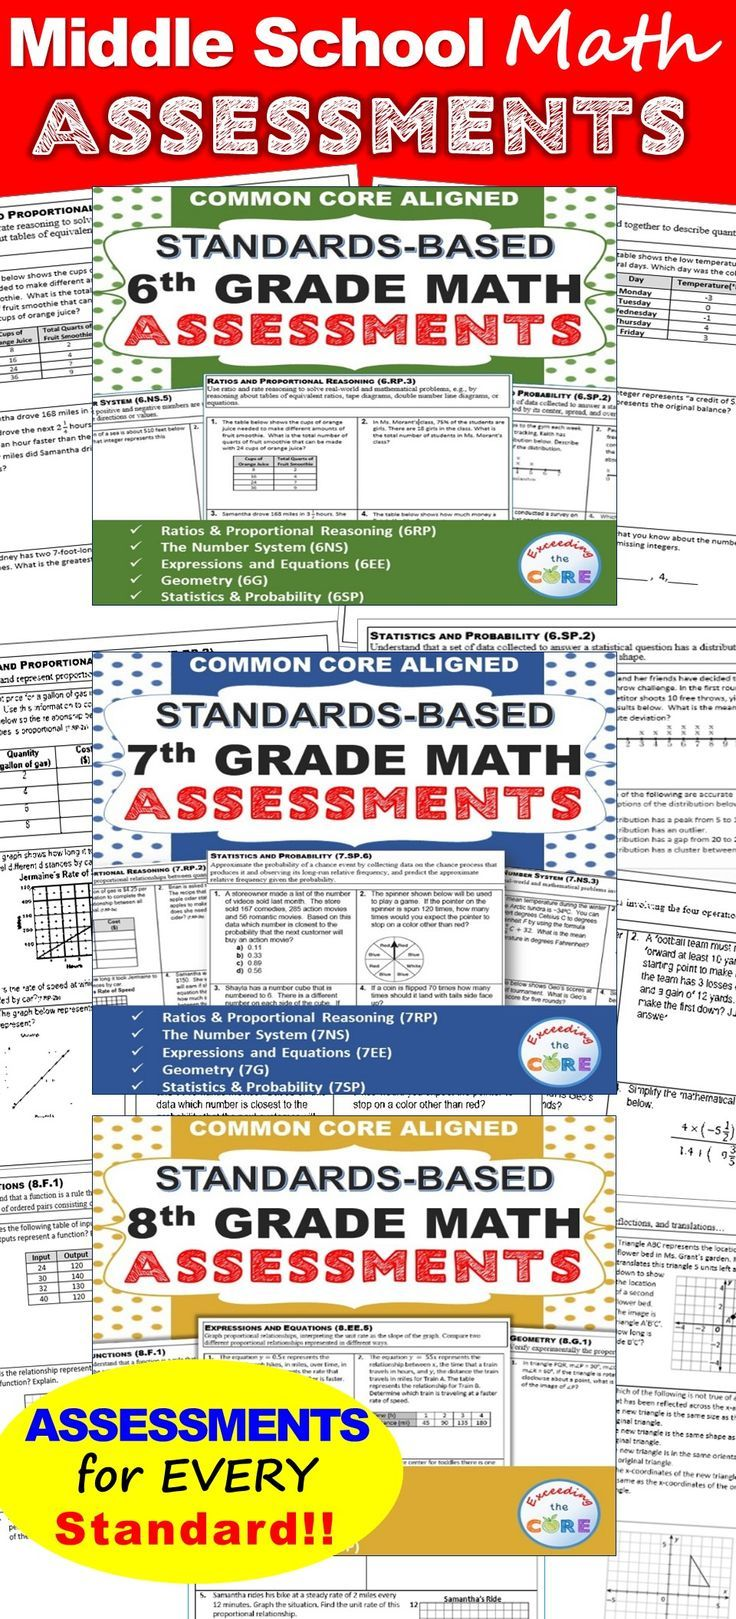 6th, 7th, 8th Grade Math Standards Based Assessments * All Standards * {Common Core} This BUNDLE resource contains a 1 page quick assessment for every common core math standard for 6th, 7th and 8th grade, students standards checklist, class tracking sheet.✔️ The Number System (6NS, 7NS, 8NS) ✔️ Expressions and Equations (6EE, 7EE, 8EE) ✔️ Functions (8F) ✔️ Ratios and Proportional Reasoning (6RP, 7RP) ✔️ Geometry (6G,